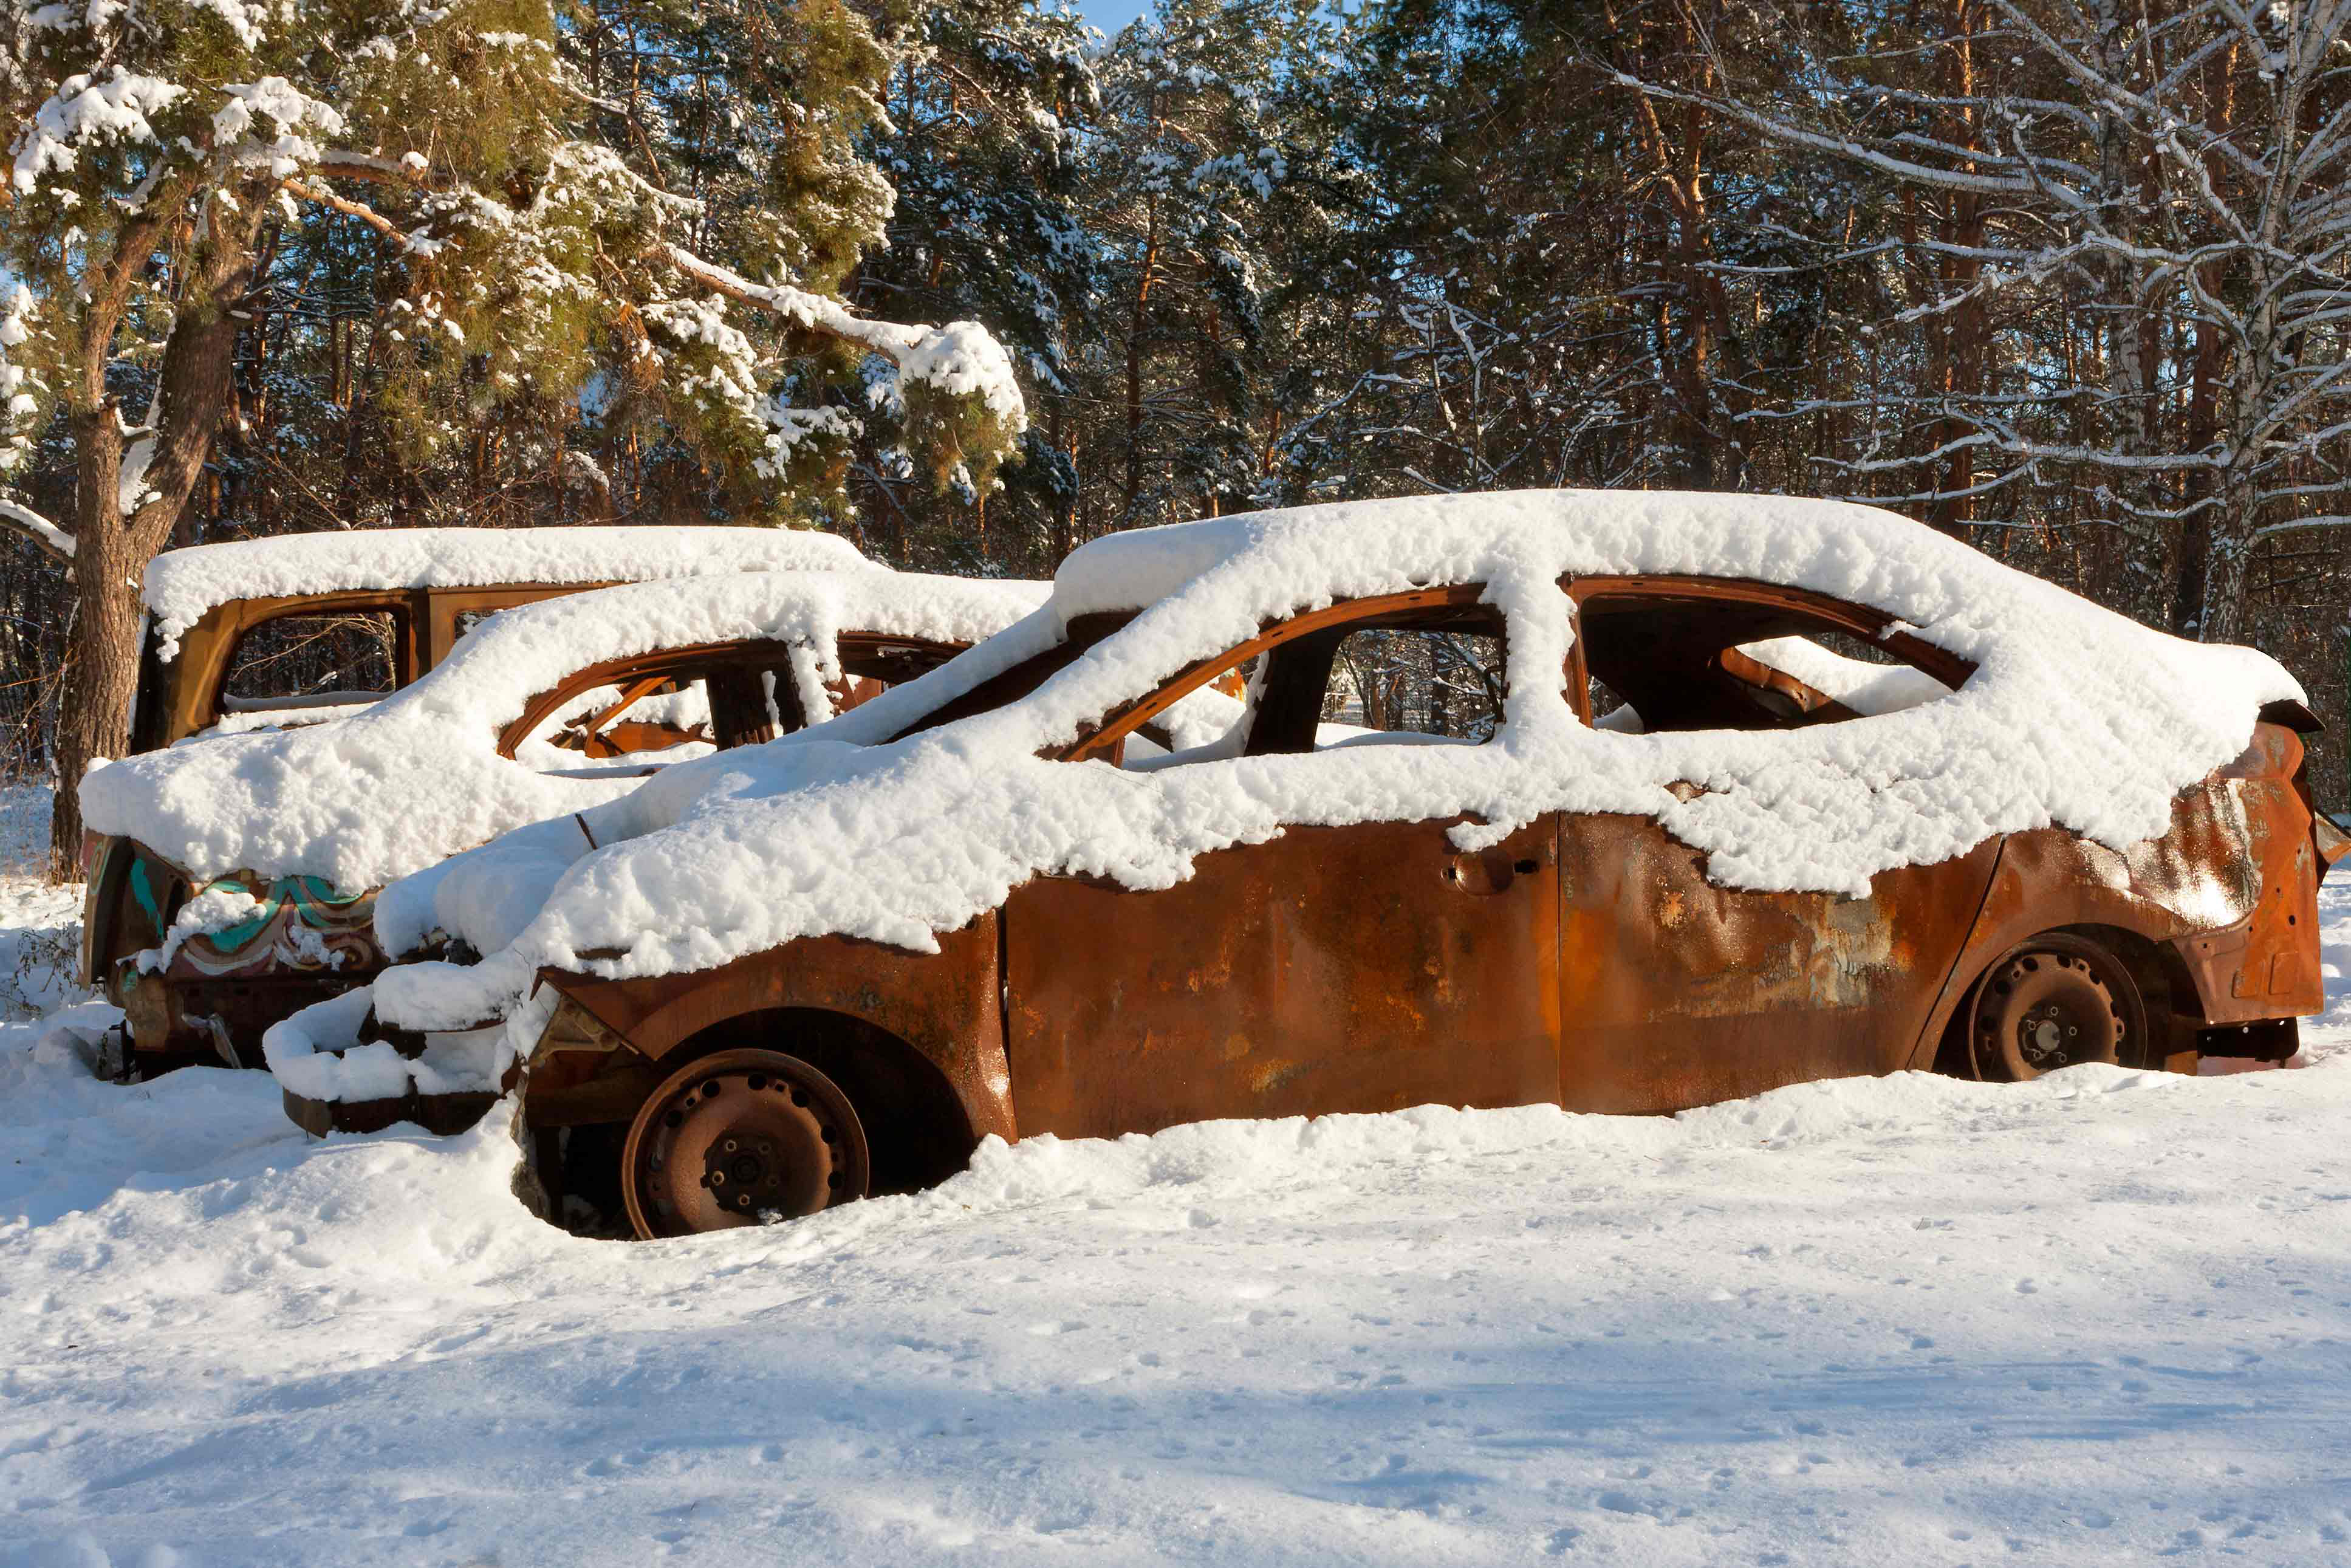 Car Covered In Snow : Free stock photo burnt out cars covered in snow